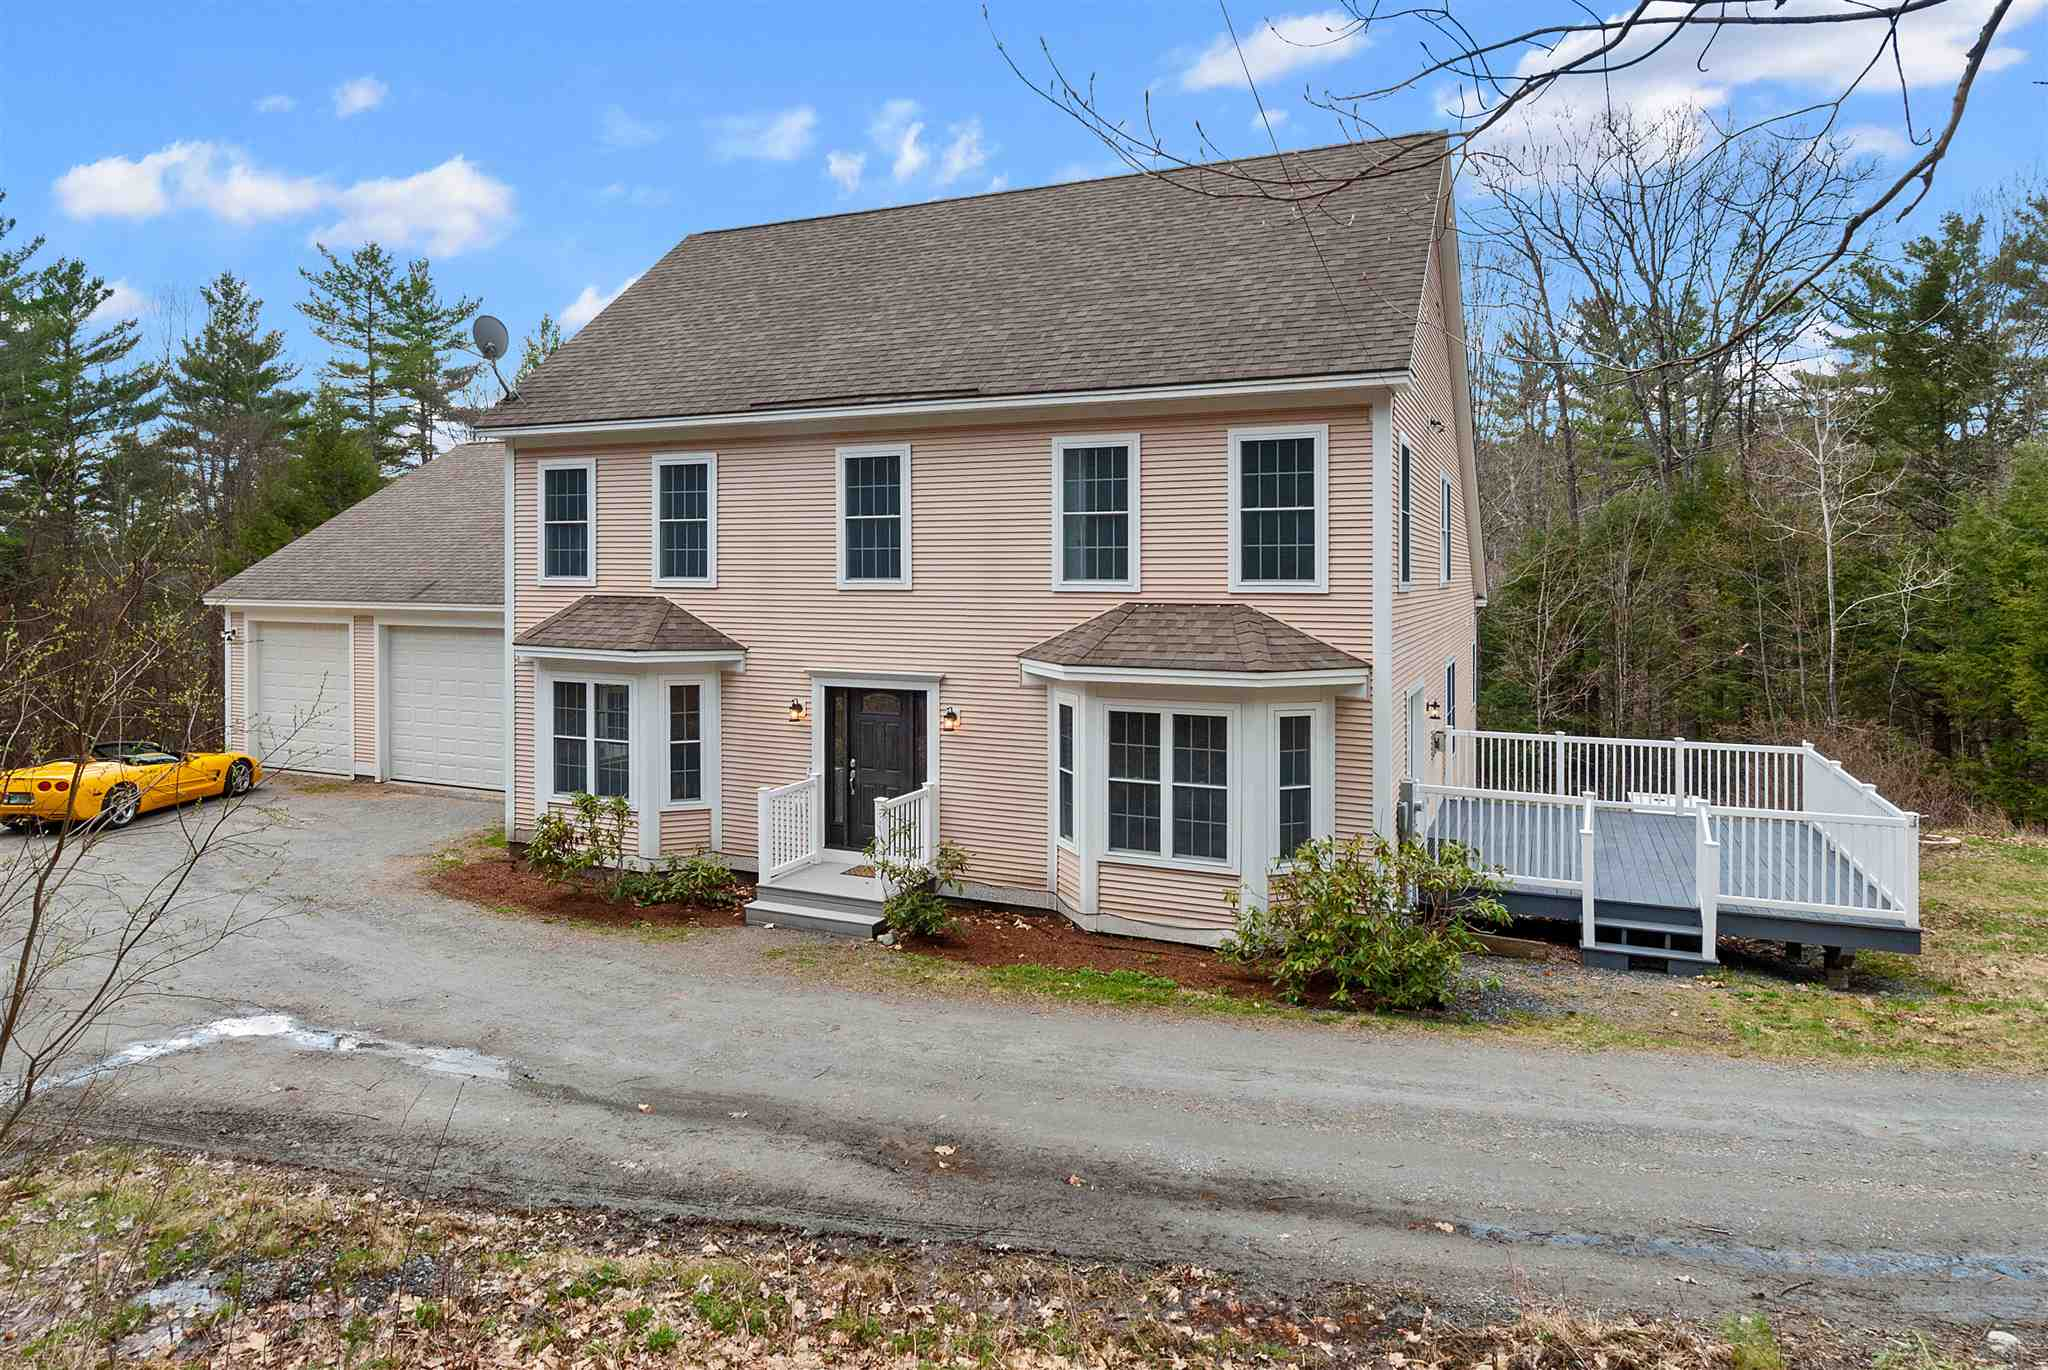 MLS 4801731: 26 Norris Road, Orford NH